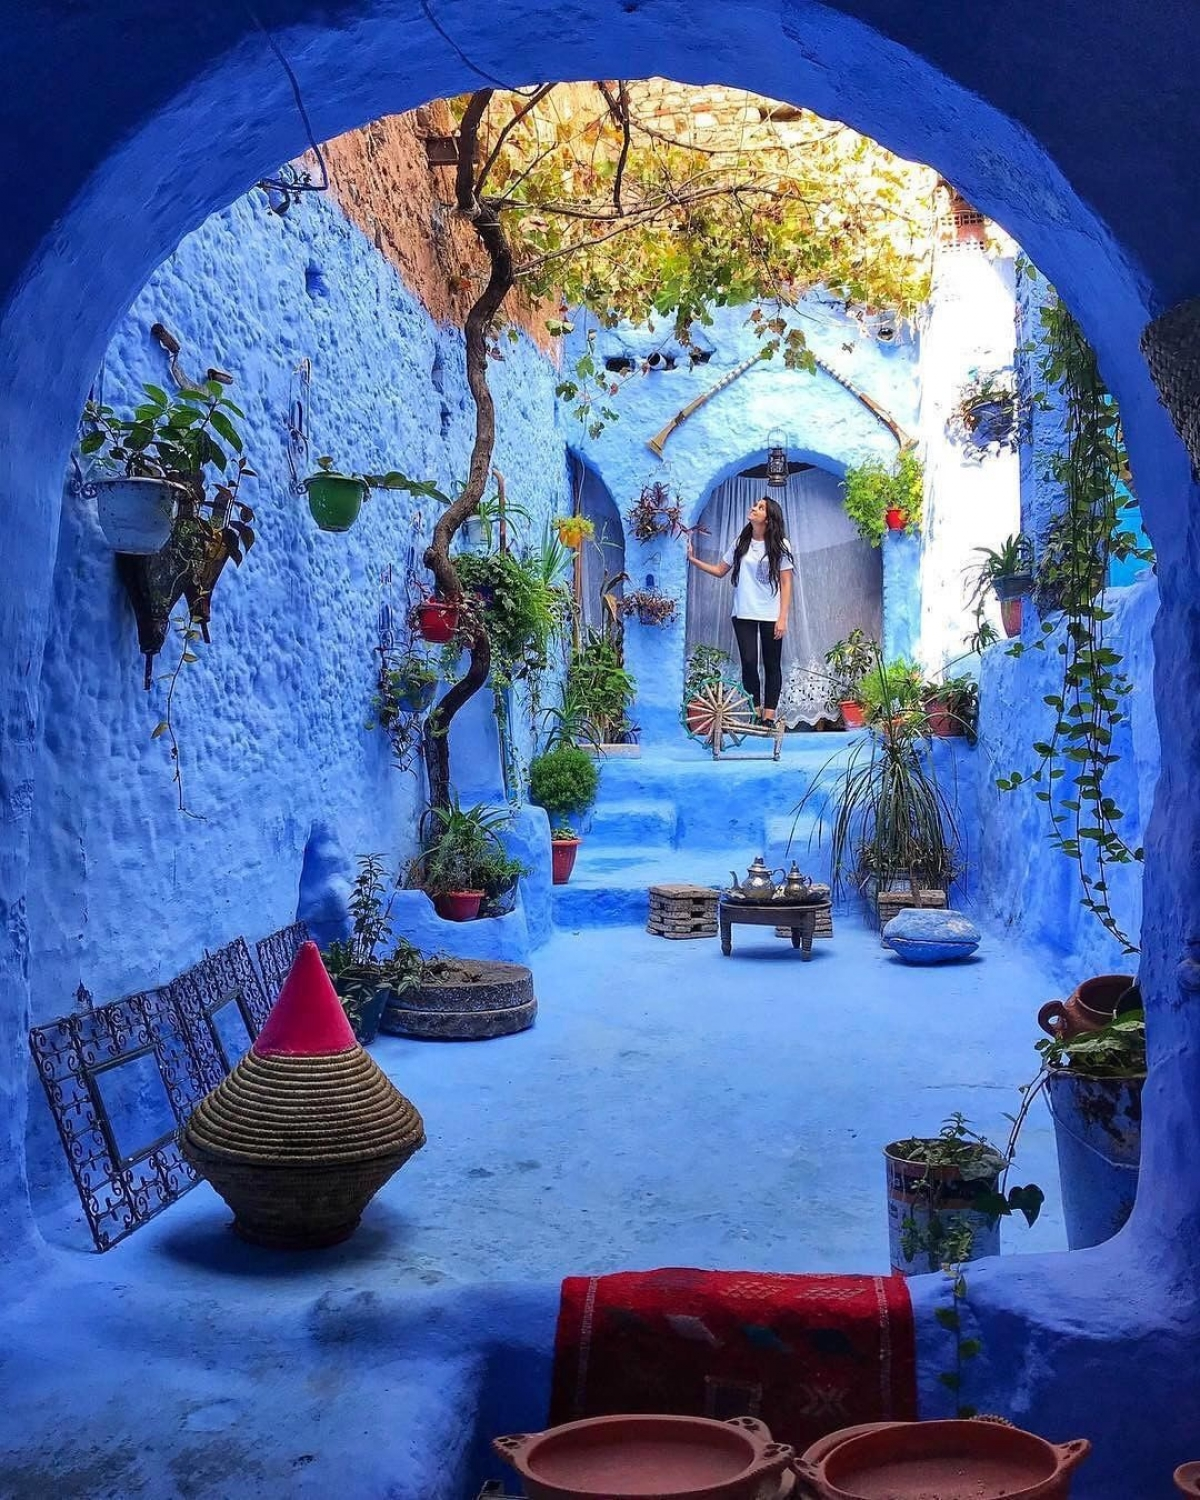 General 1200x1500 architecture building photography women arch portrait display Morocco old building plants flowerpot trees blue